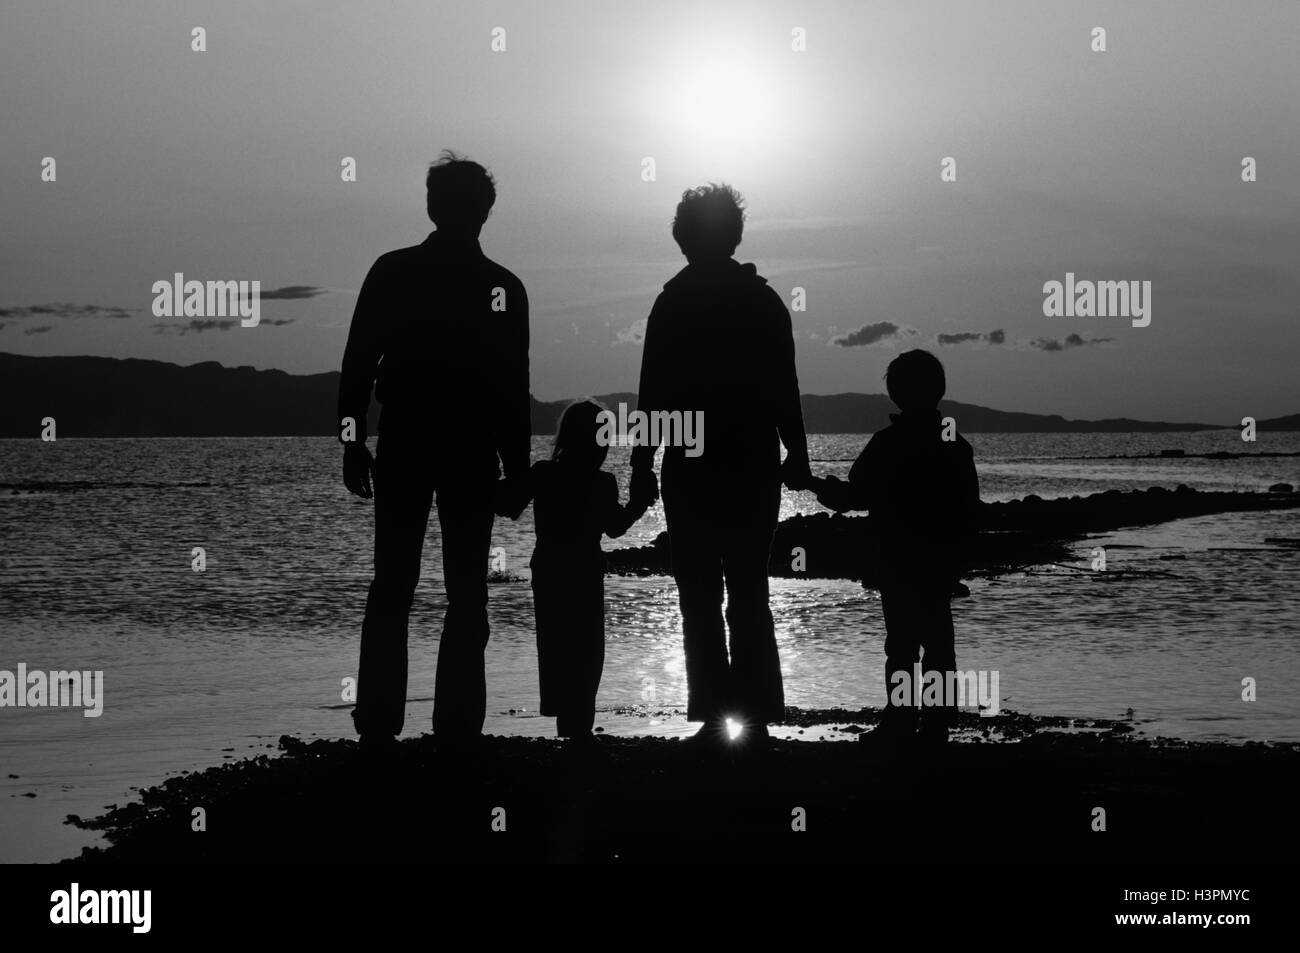 1980s REAR VIEW SILHOUETTE OF ANONYMOUS FAMILY OF FOUR STANDING ON BEACH HOLDING HANDS AT SUNSET - Stock Image